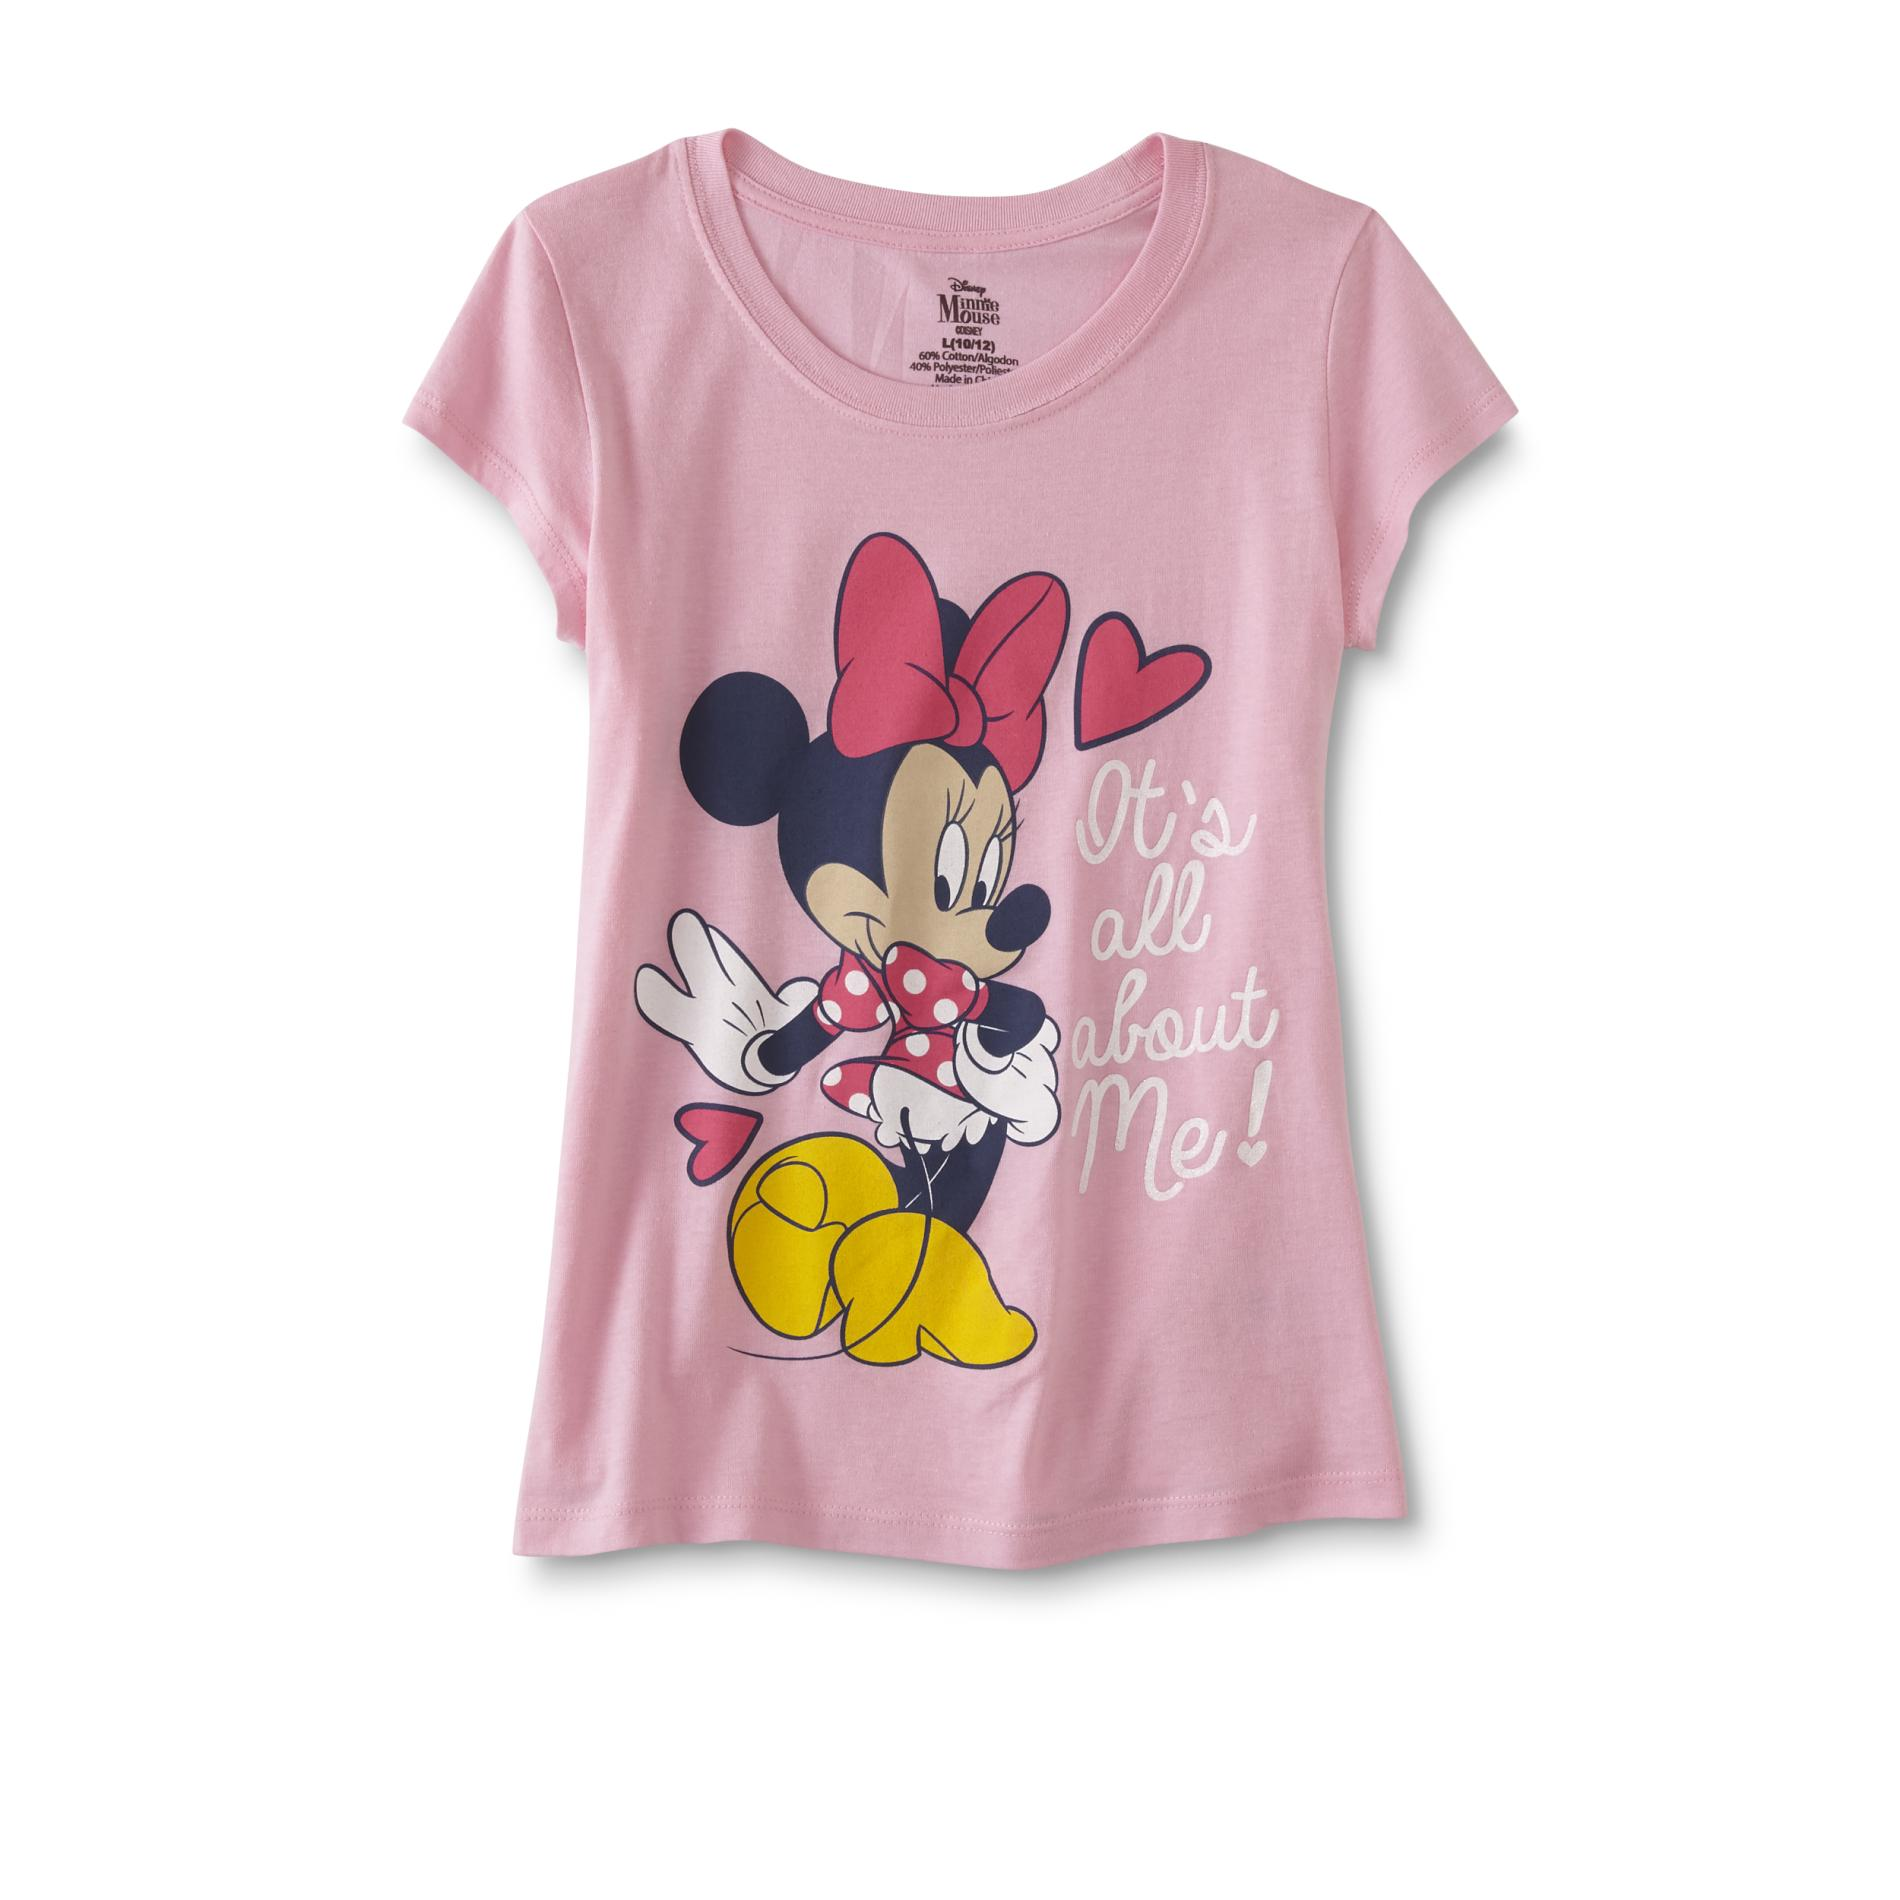 ea6f1227f Disney Minnie Mouse Girls' Graphic T-Shirt - It's All About Me